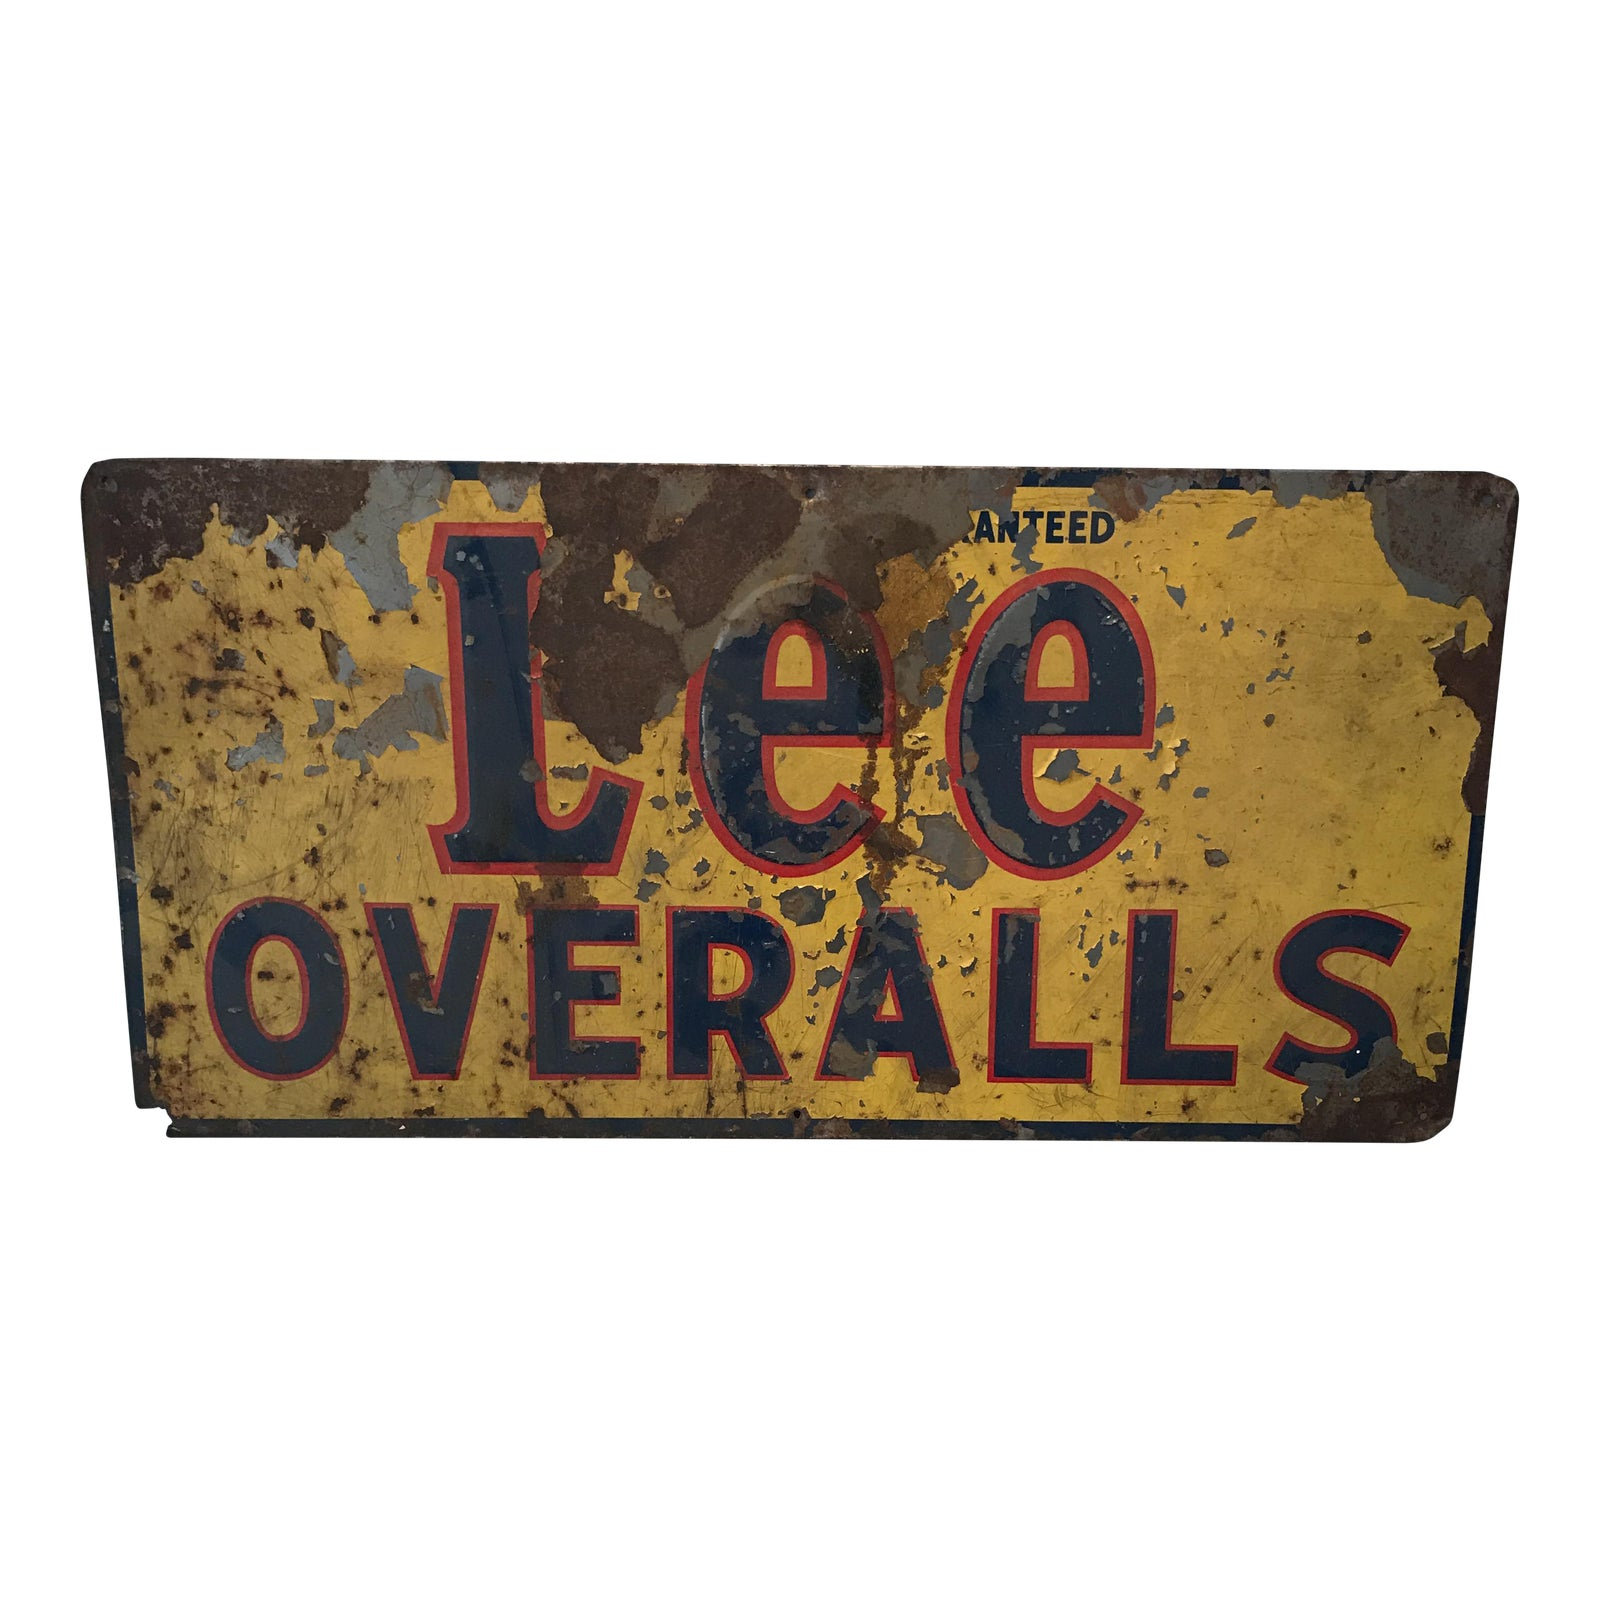 Lee Overalls Metal Advertising Sign Chairish